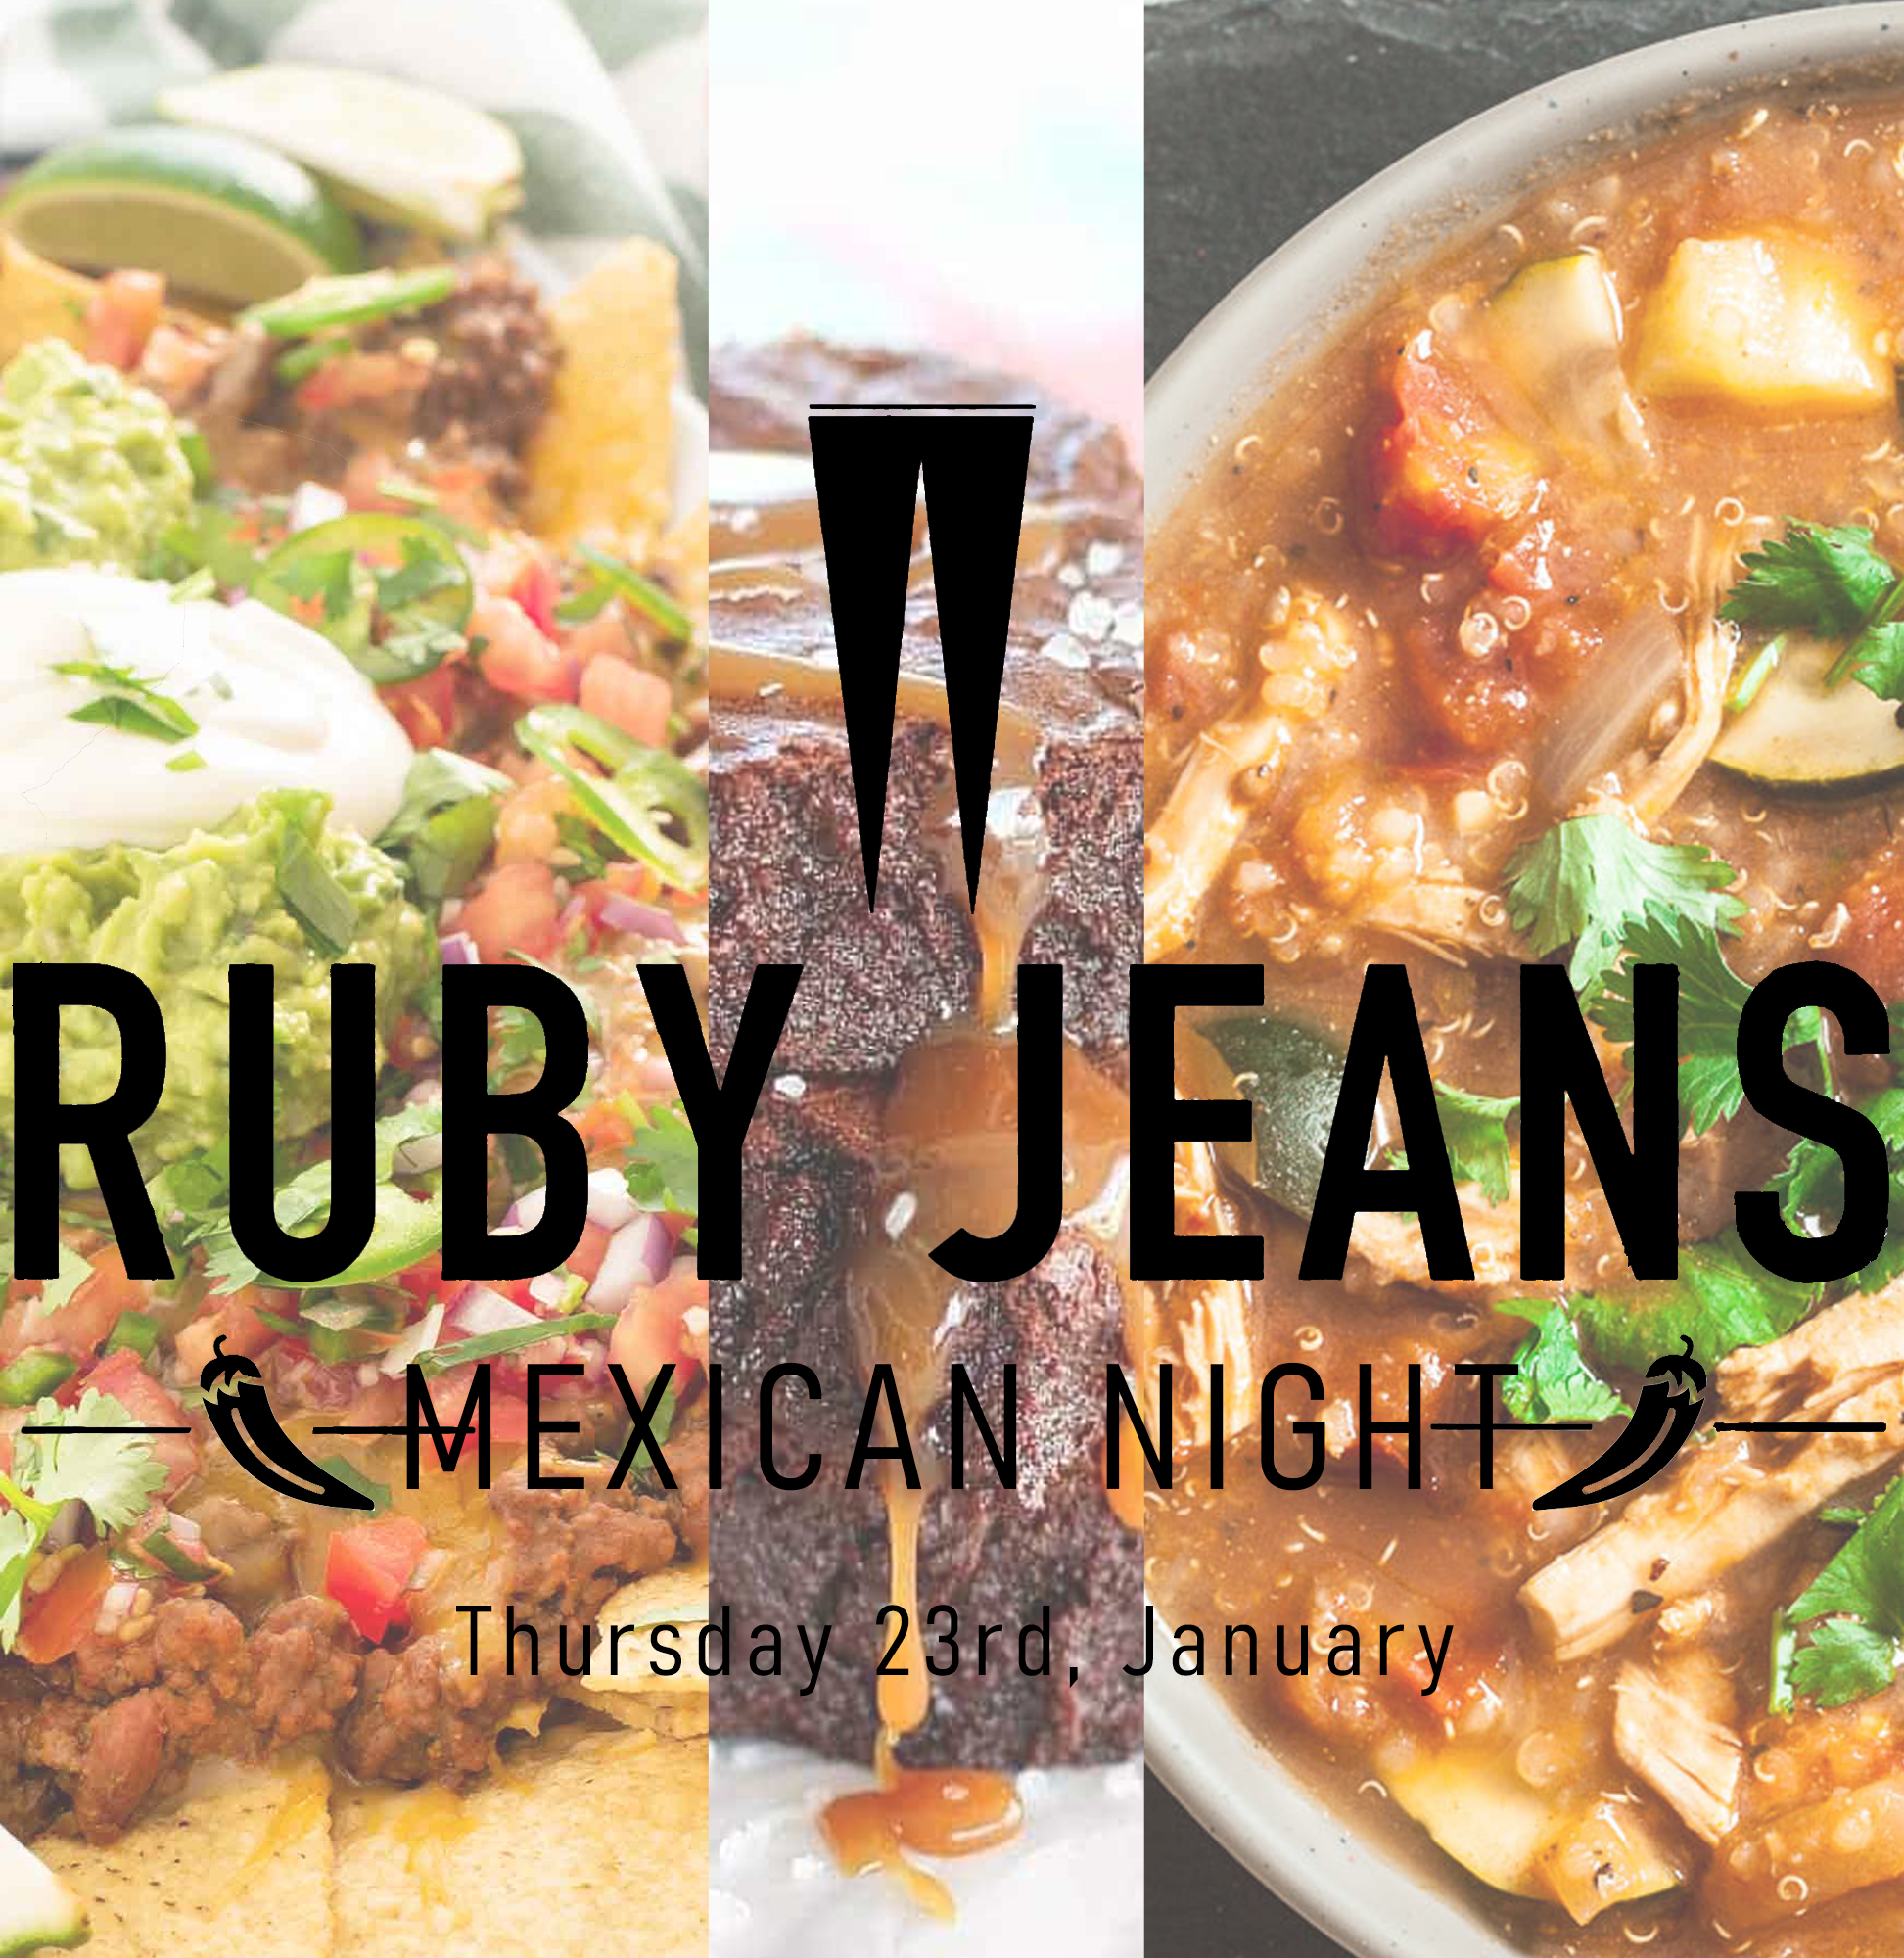 Mexican Night - 23rd Jan 2020 - 7pm